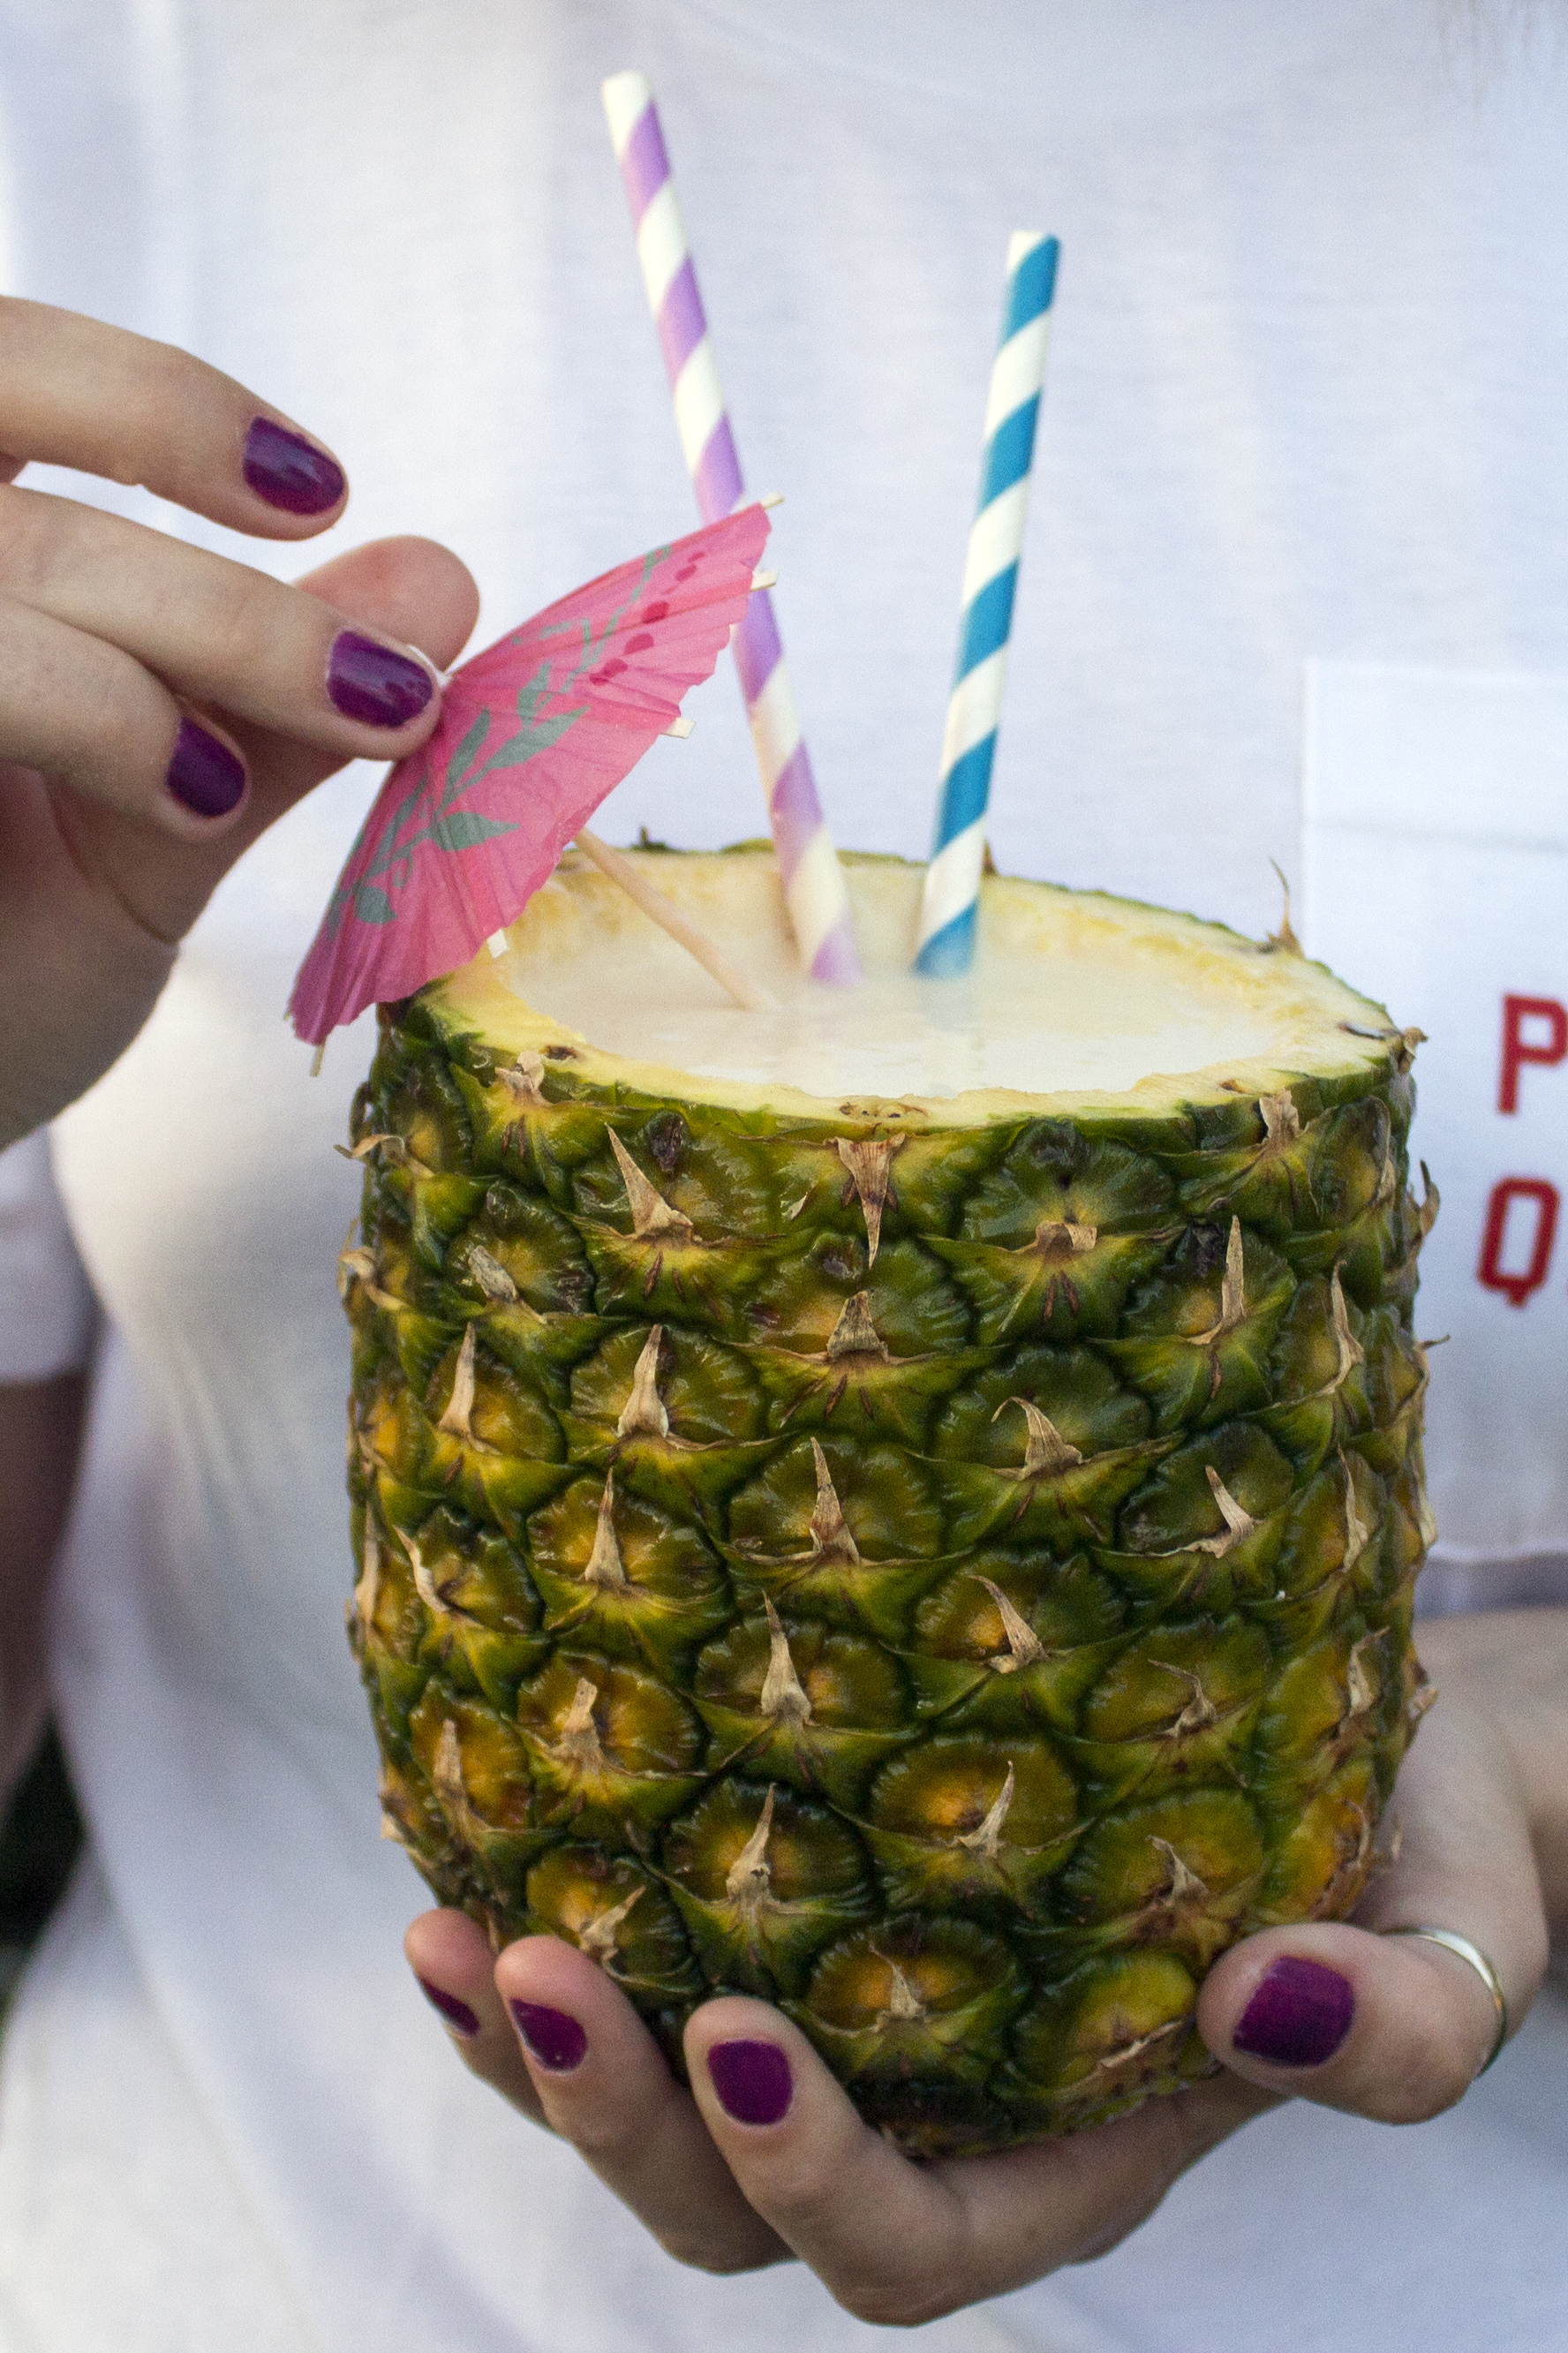 Banana Pineapple Daiquiri served in a Pineapple Cup via Unusually Lovely